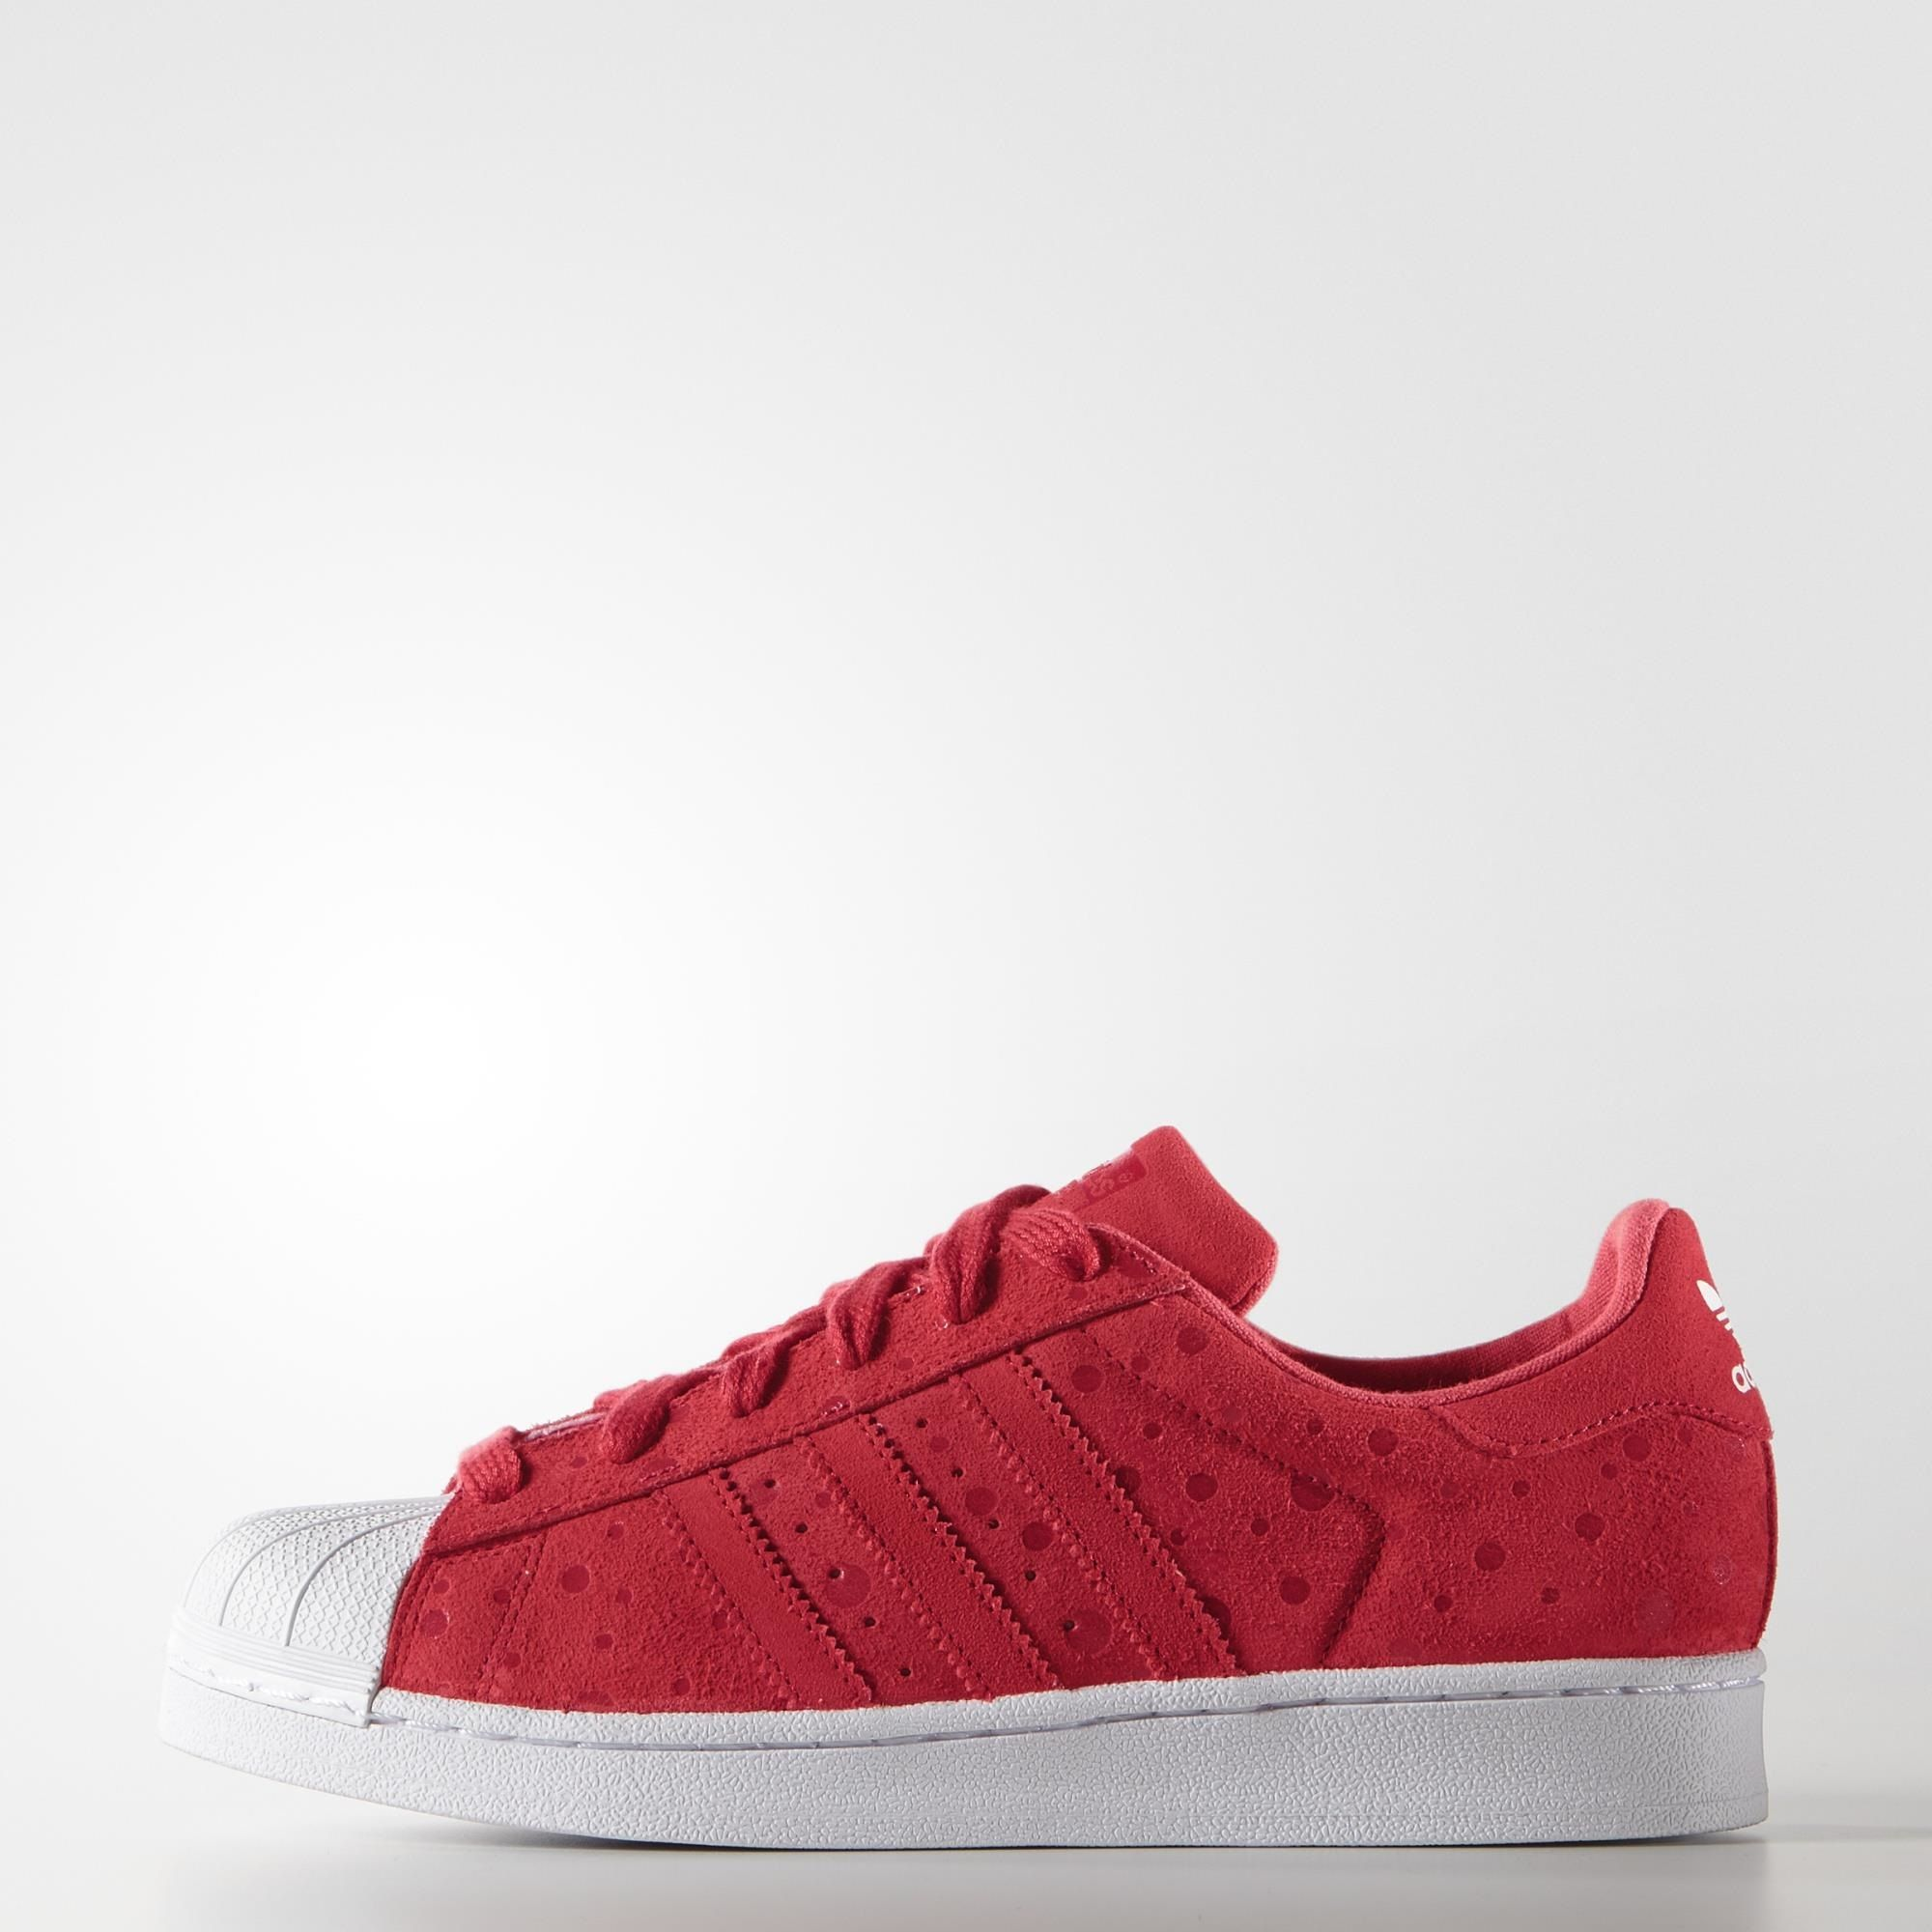 promo code c8660 60427 Tenis Superstar, Adidas Colombia, Superstars Shoes, Adidas Women, Adidas  Shoes, Adidas